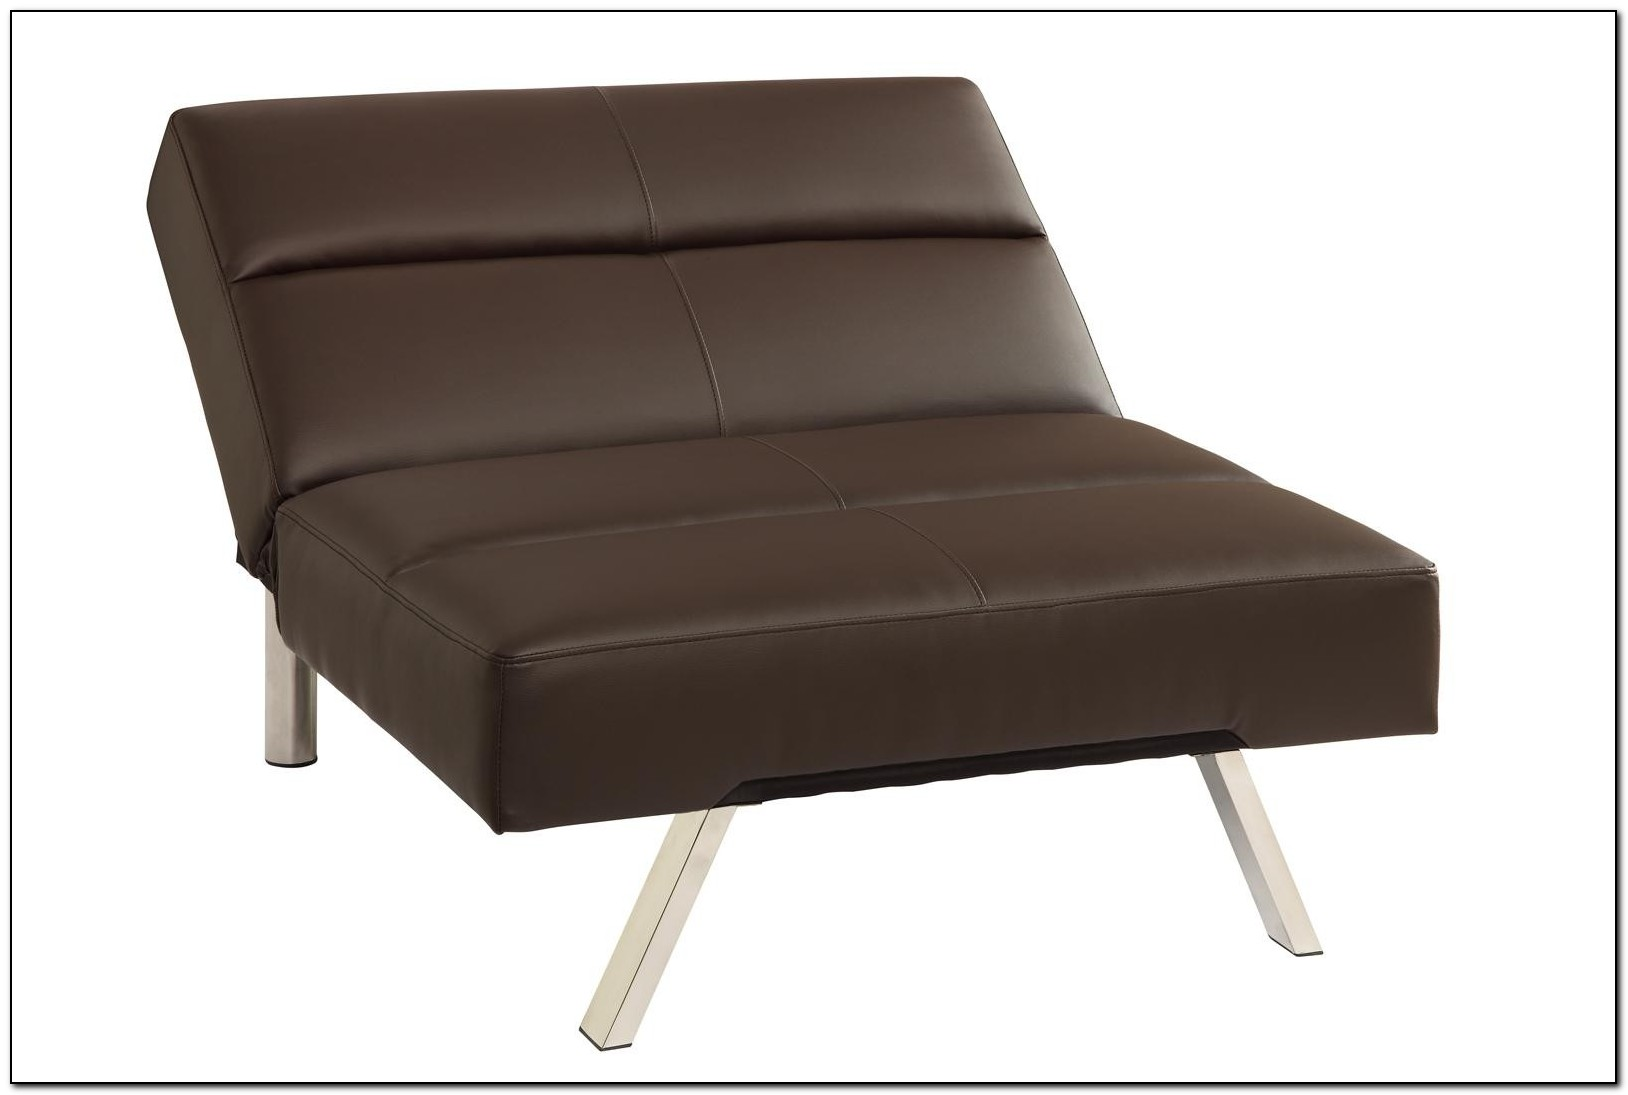 Image of: Convertible Chair Sleeper Picture